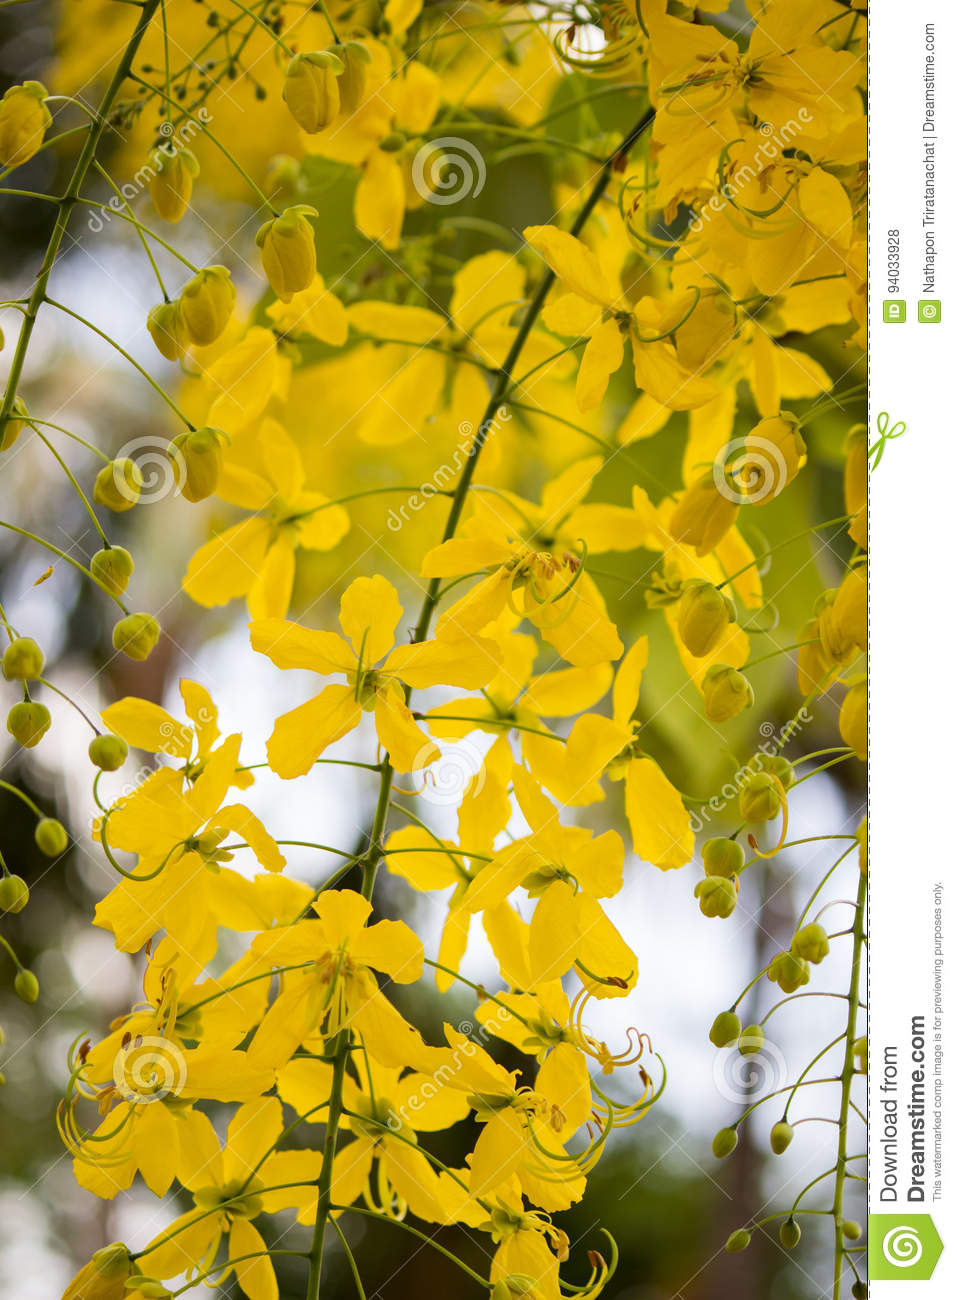 Bright yellow flowers of cassia fistulagolden shower tree in bloom bright yellow flowers of cassia fistulagolden shower tree in bloom mightylinksfo